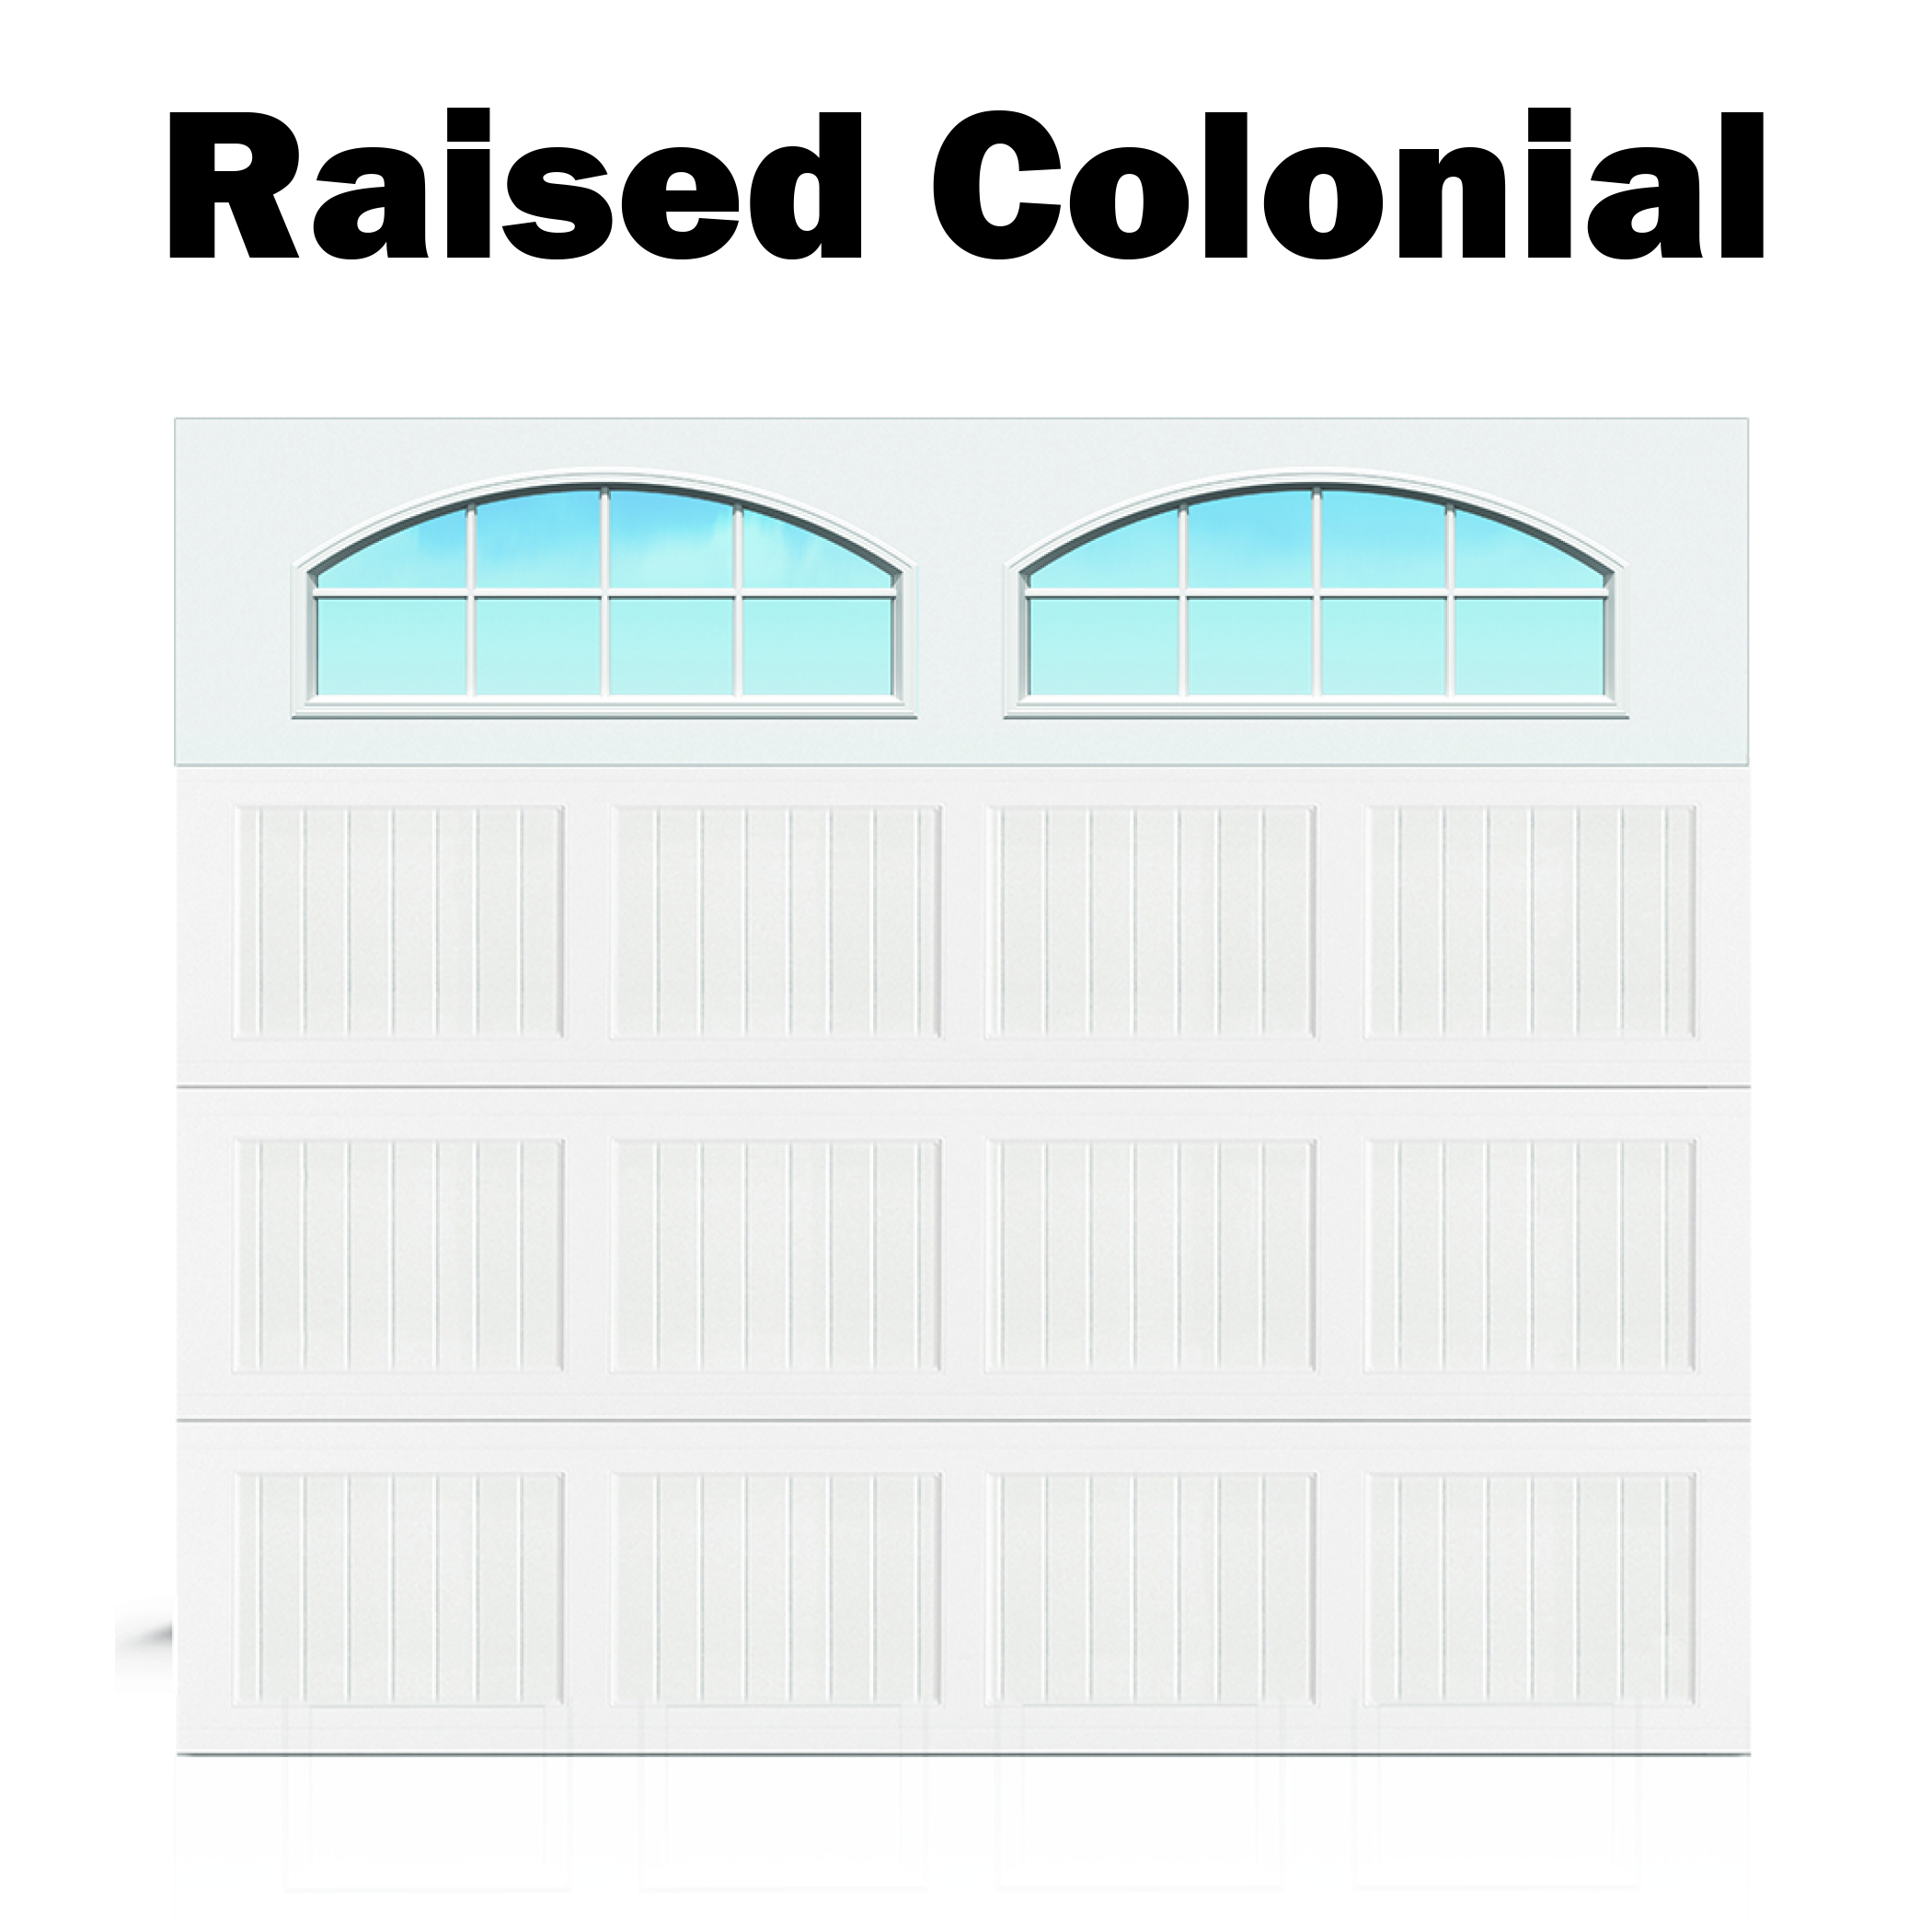 Raised Colonial - Grandview.jpg